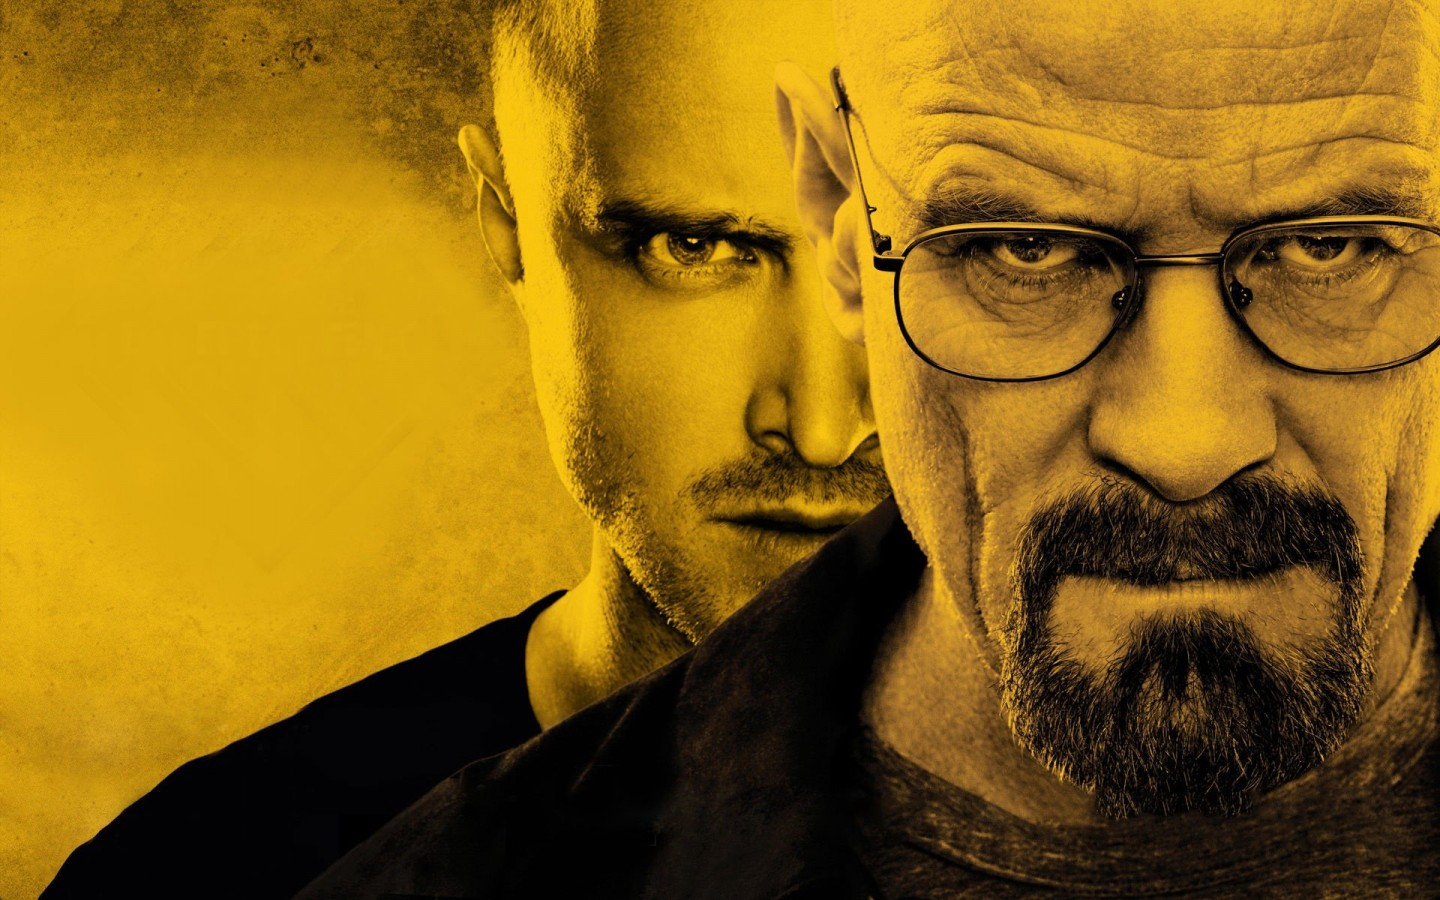 Breaking Bad - Jesse & Walter White Wallpaper for Desktop 1440x900